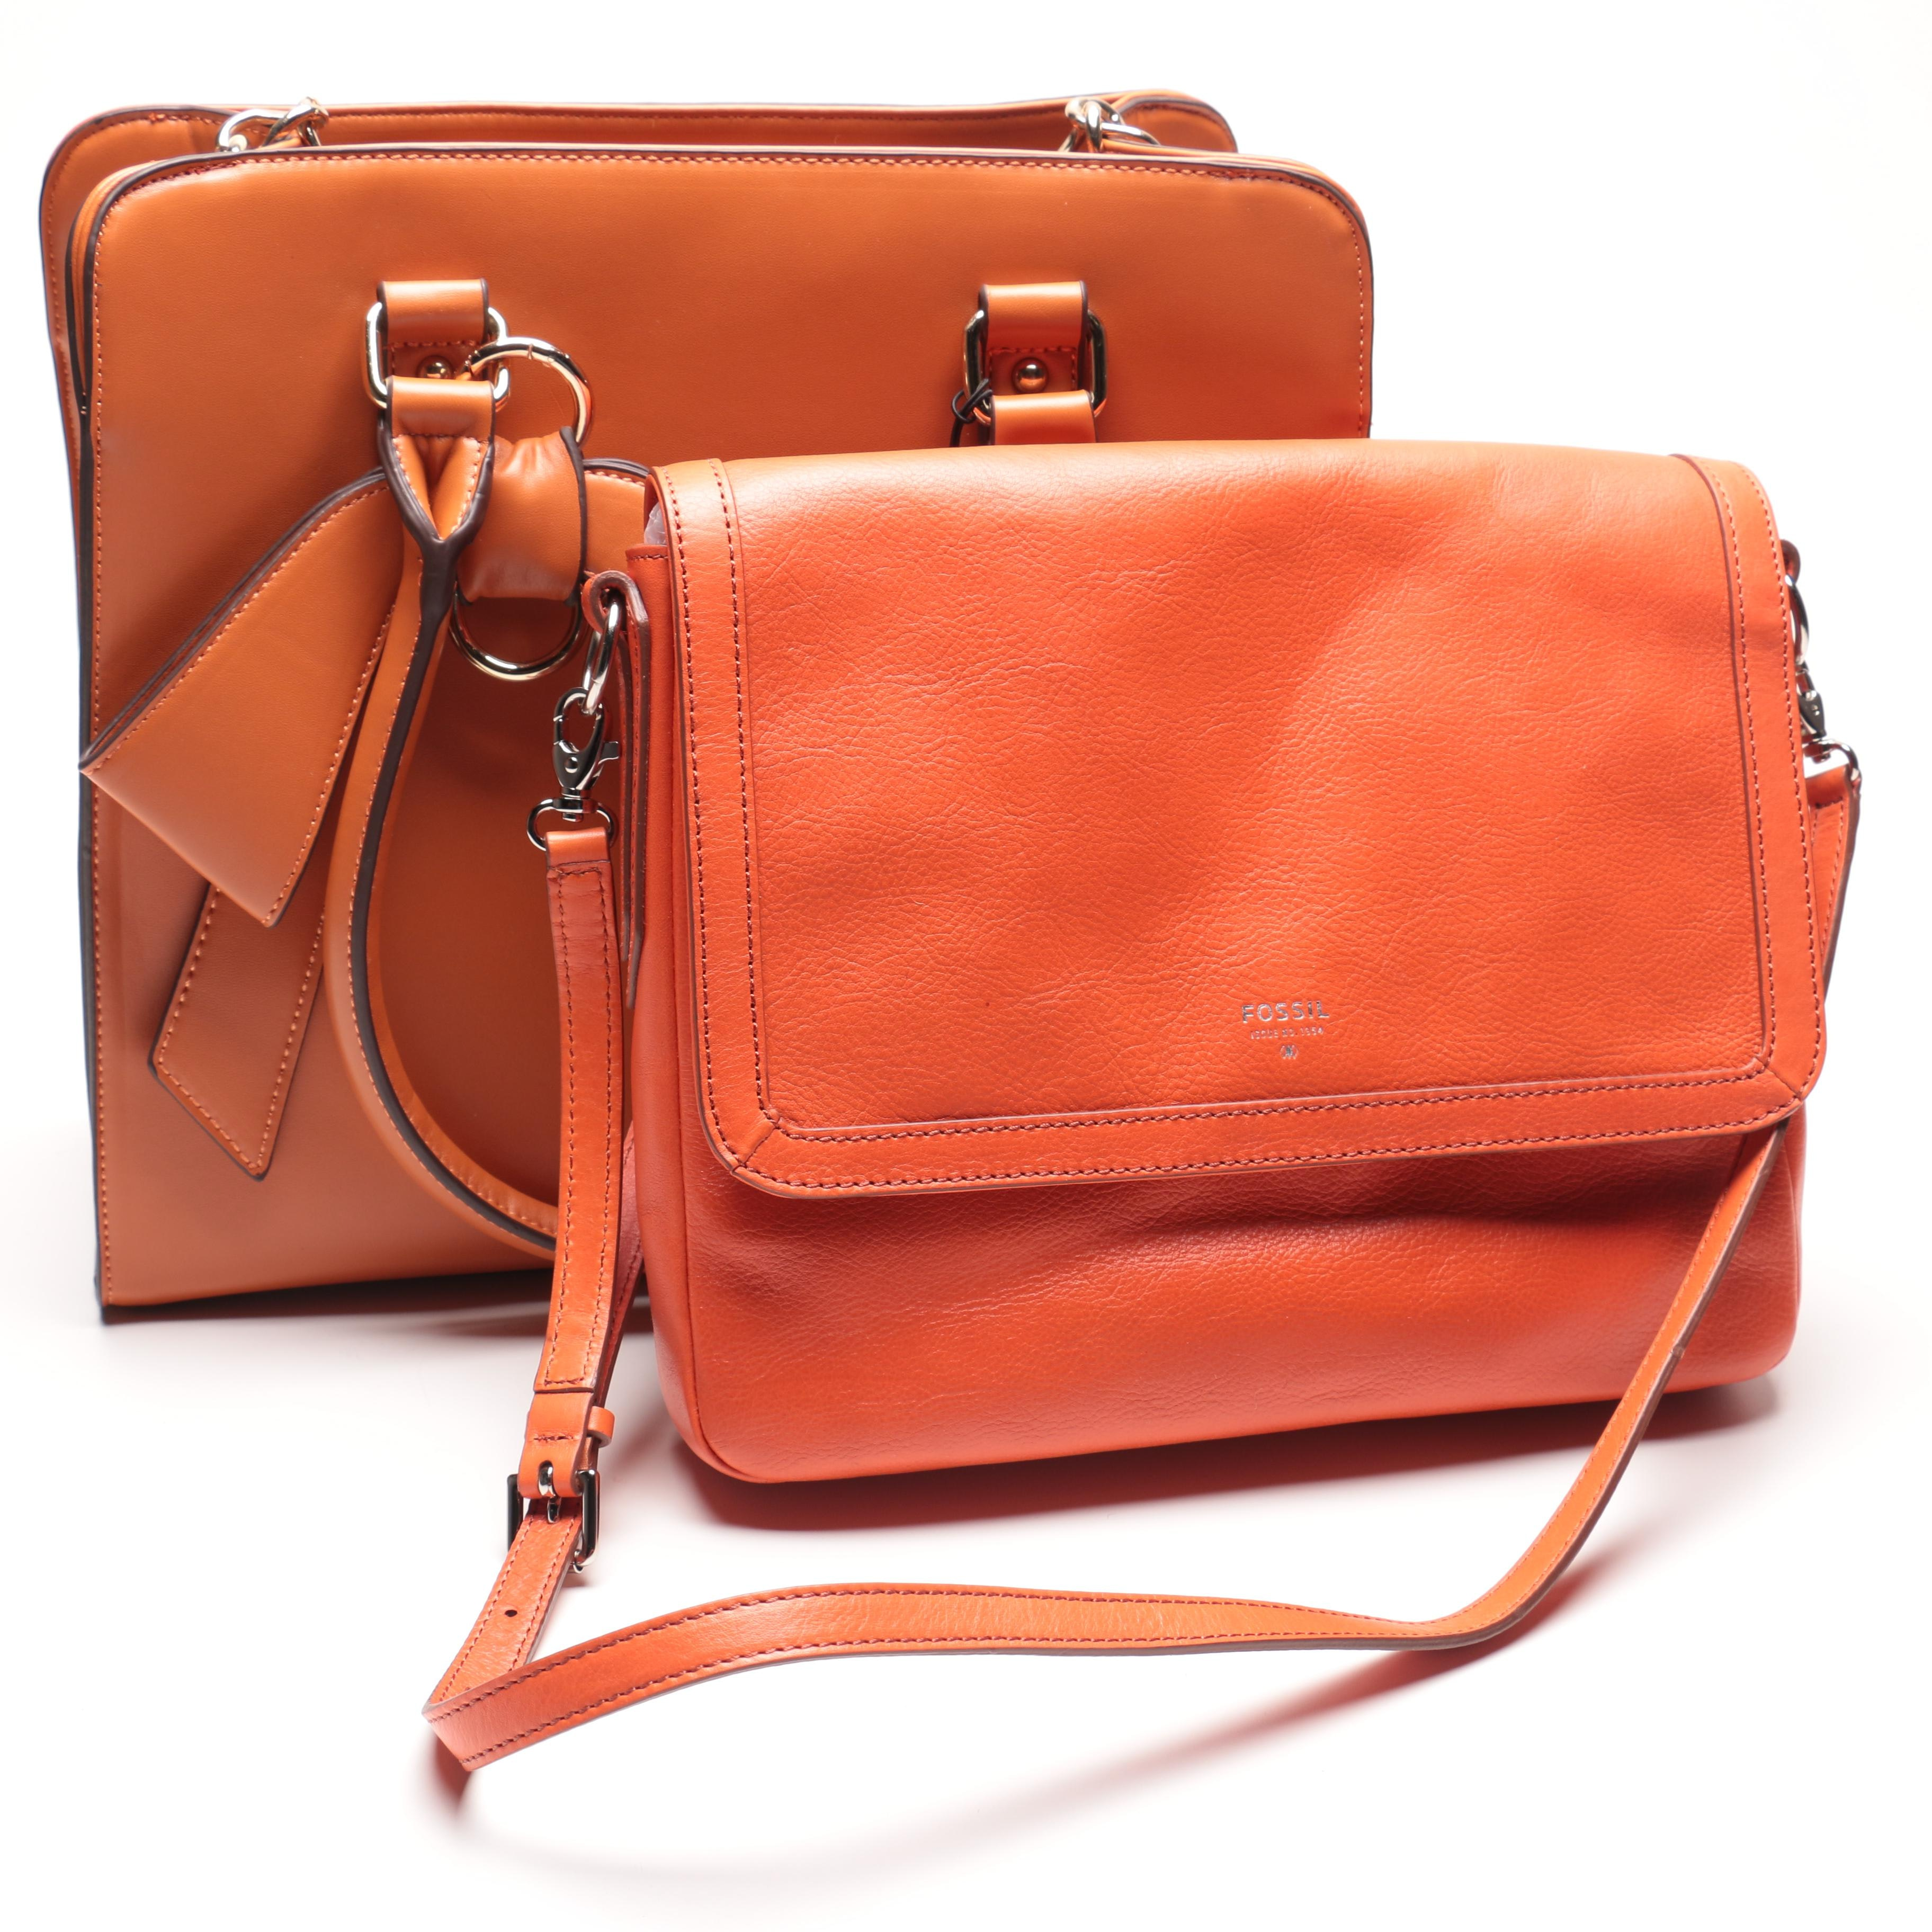 Pair of Handbags Featuring Fossil